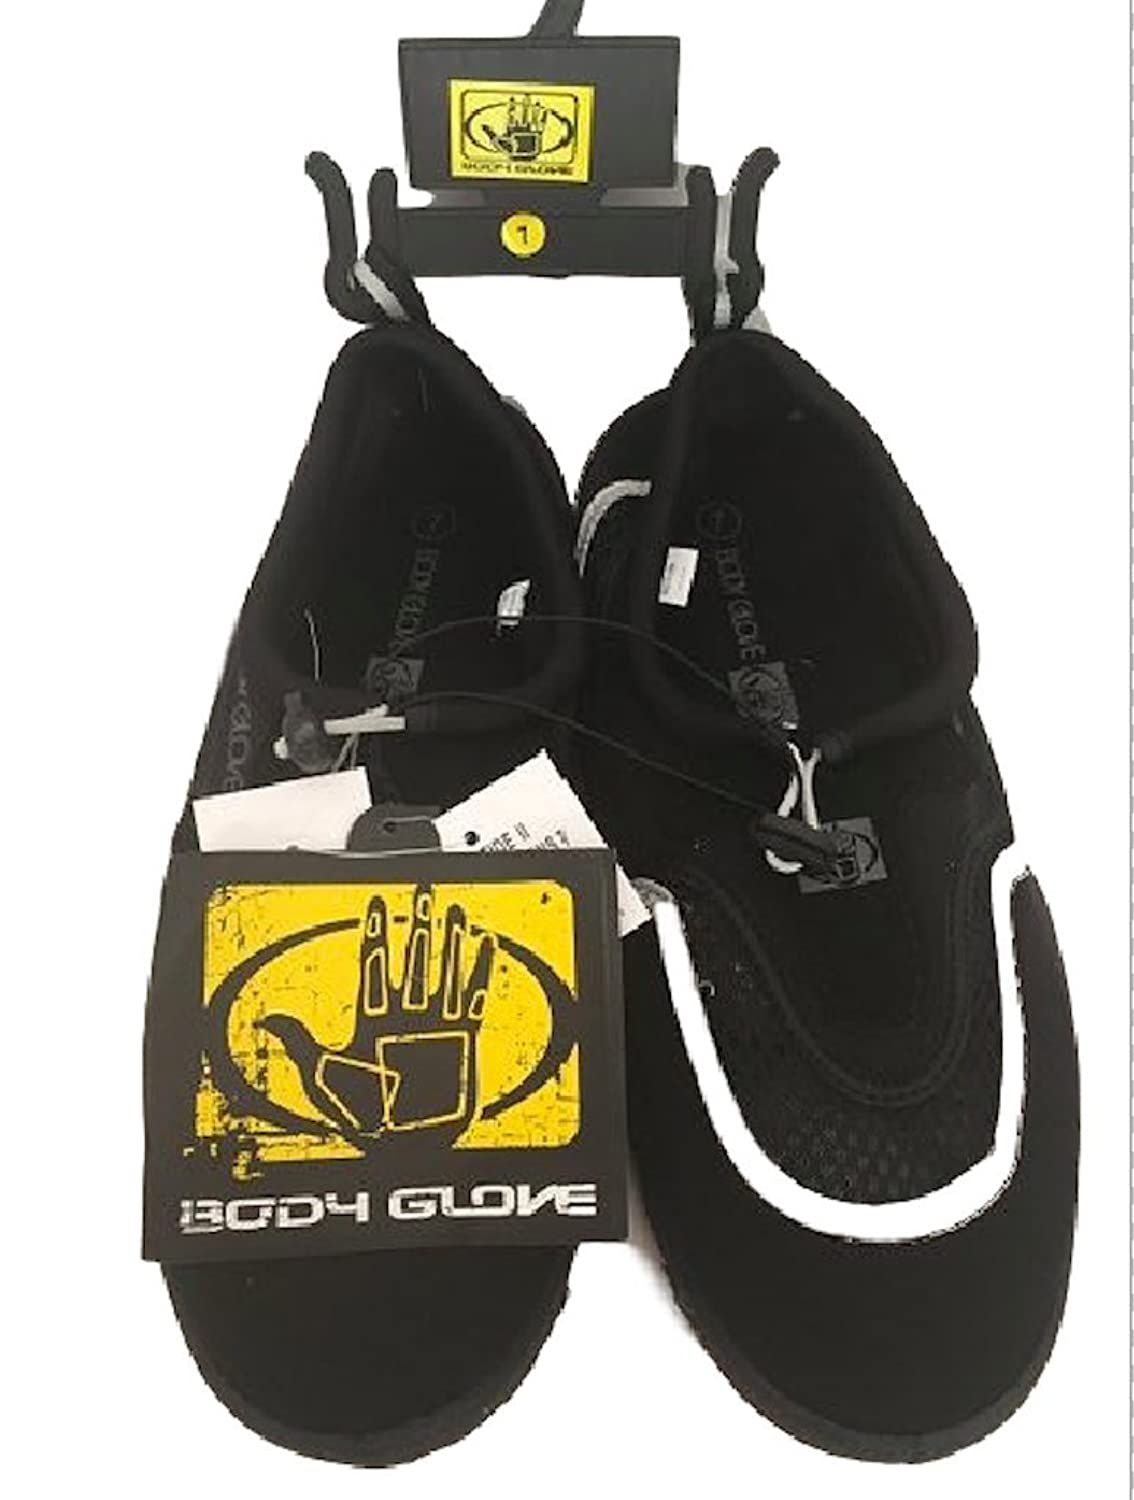 Body Glove Mens's Every Day Water Shoe Sports Our Doors Black/grey Size 7